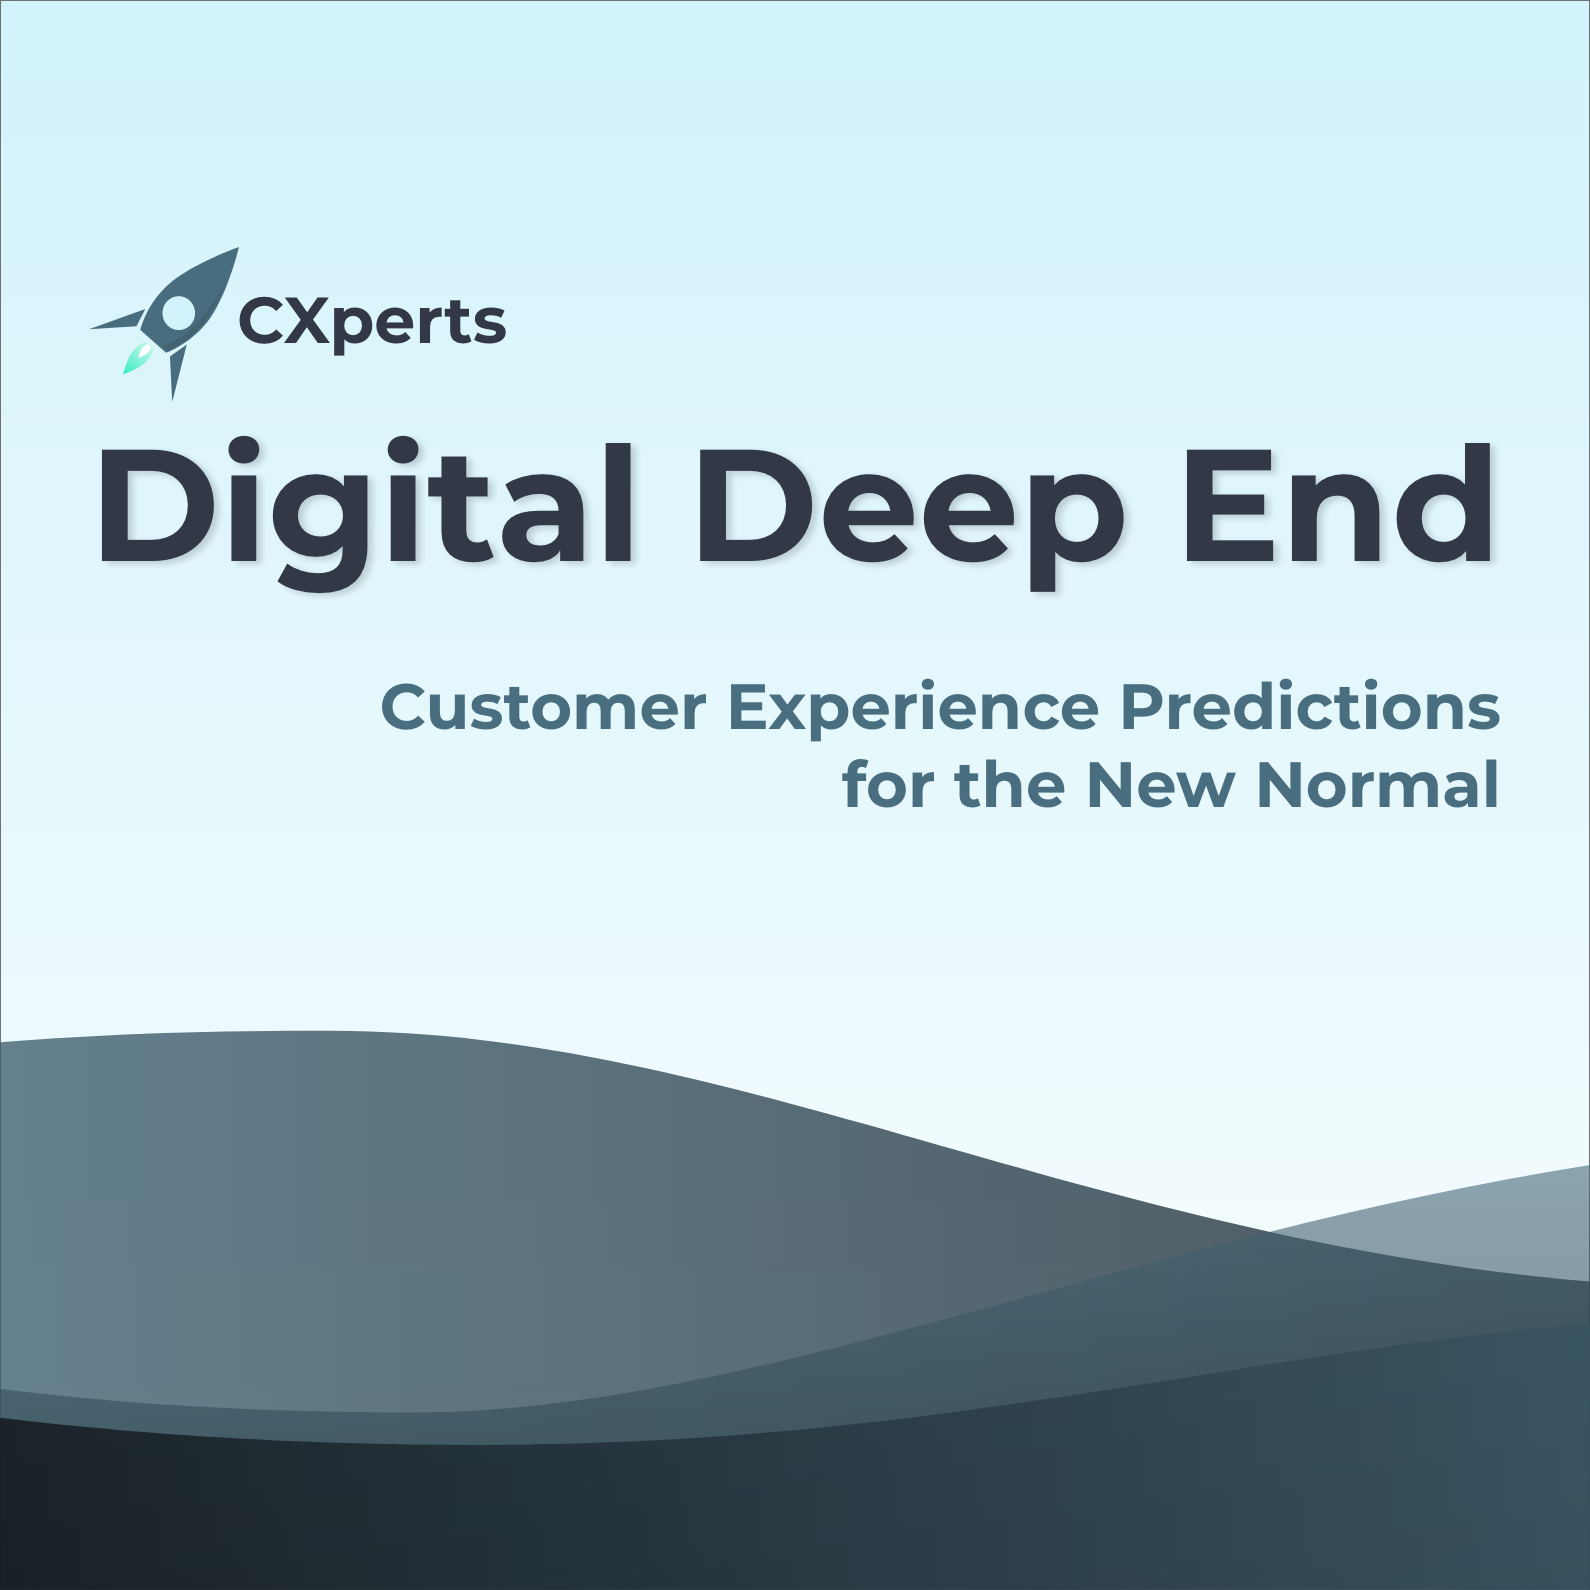 User Experience (UX) and COVID-19 - The Digital Deep End